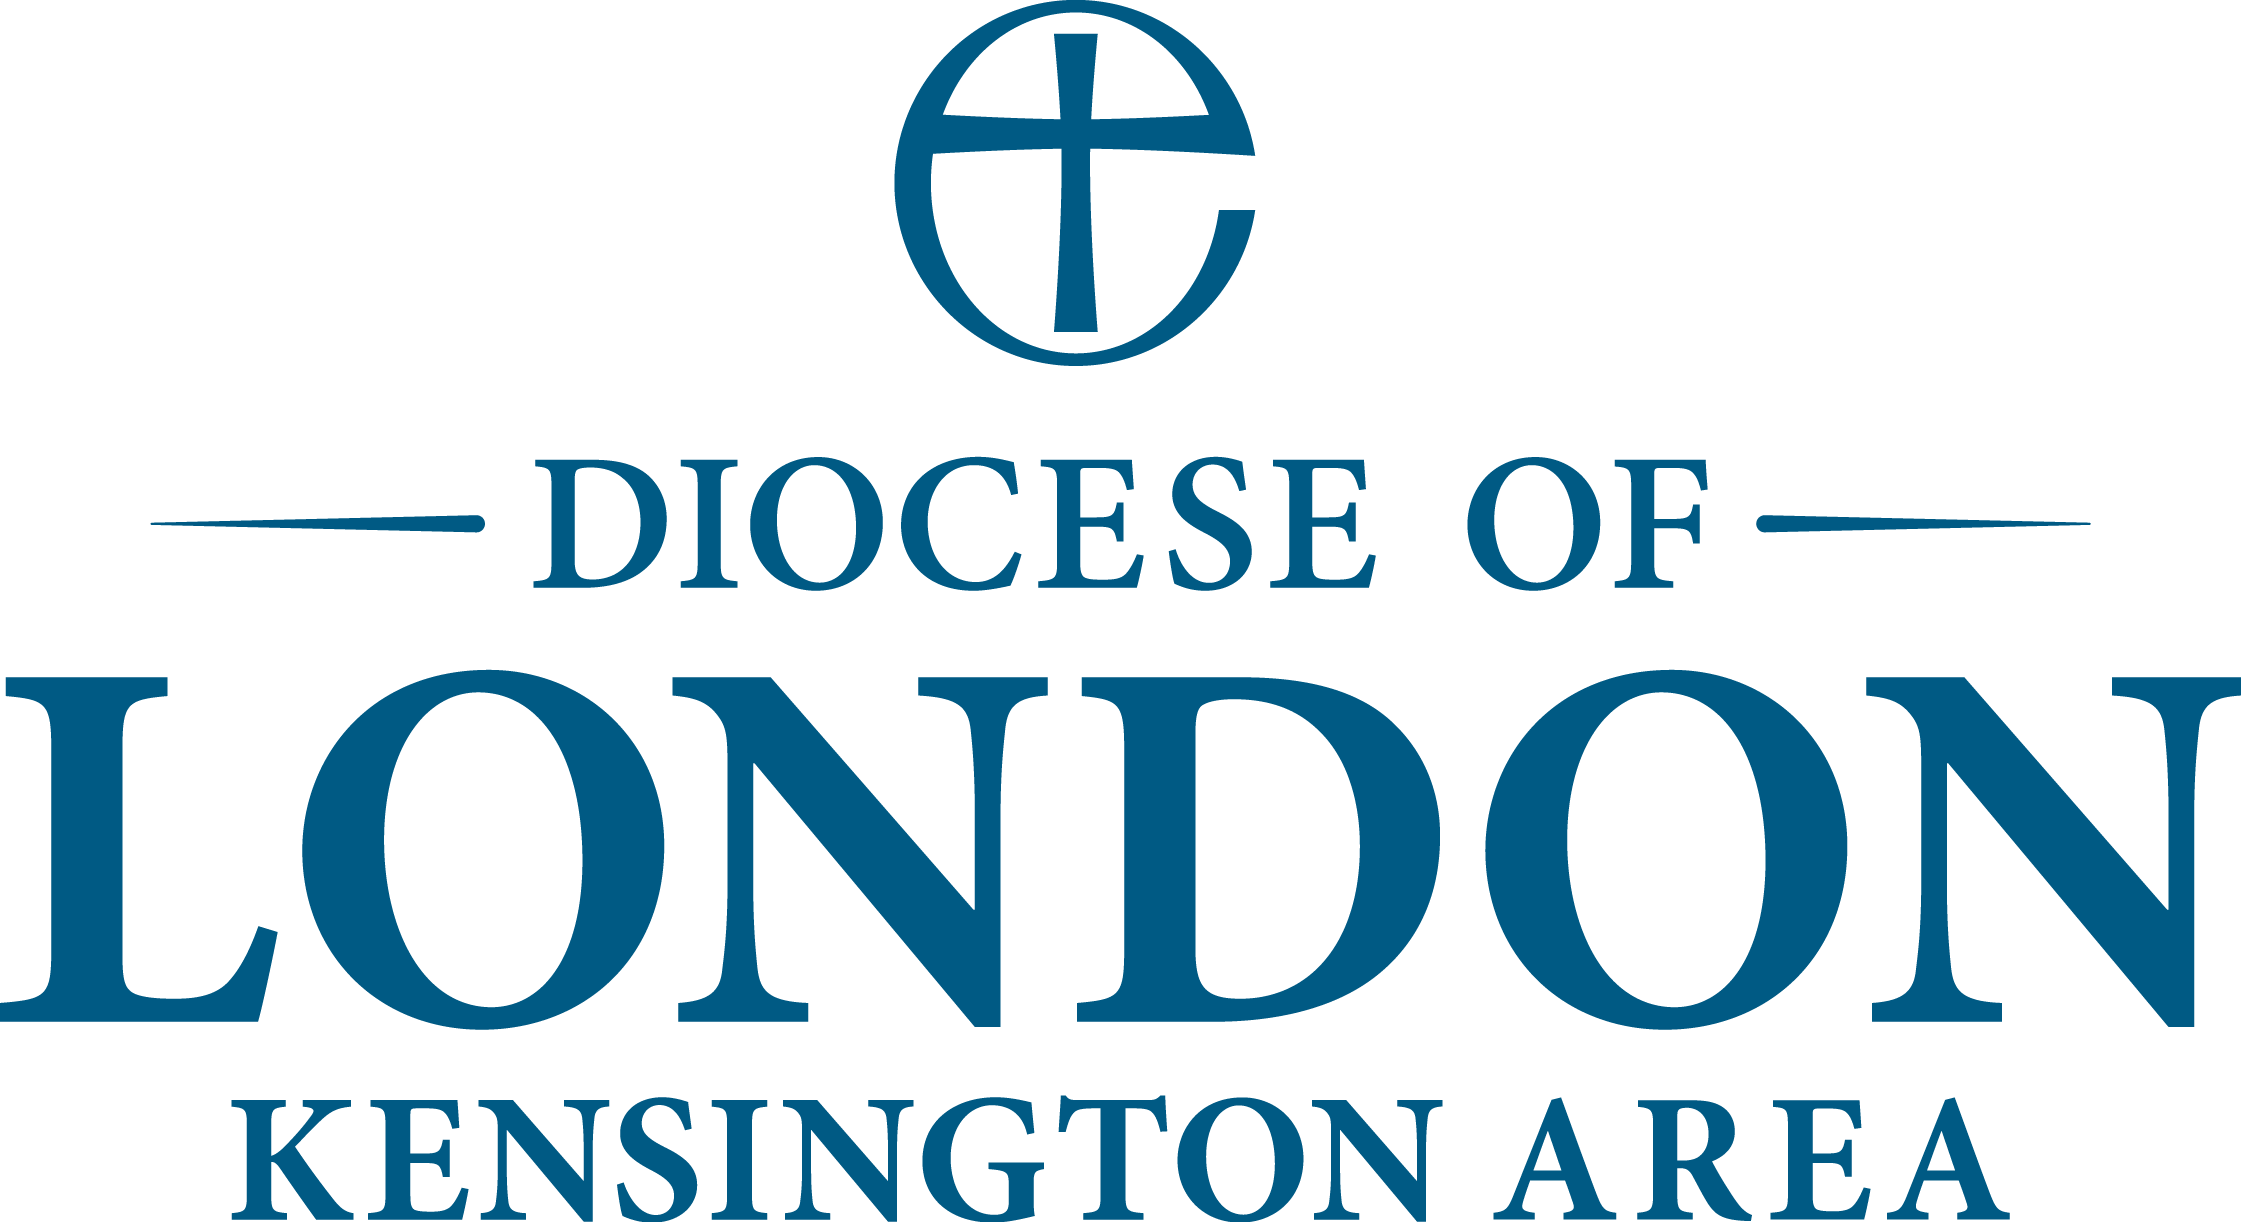 Diocese of London Kensington Episcopal Area logo